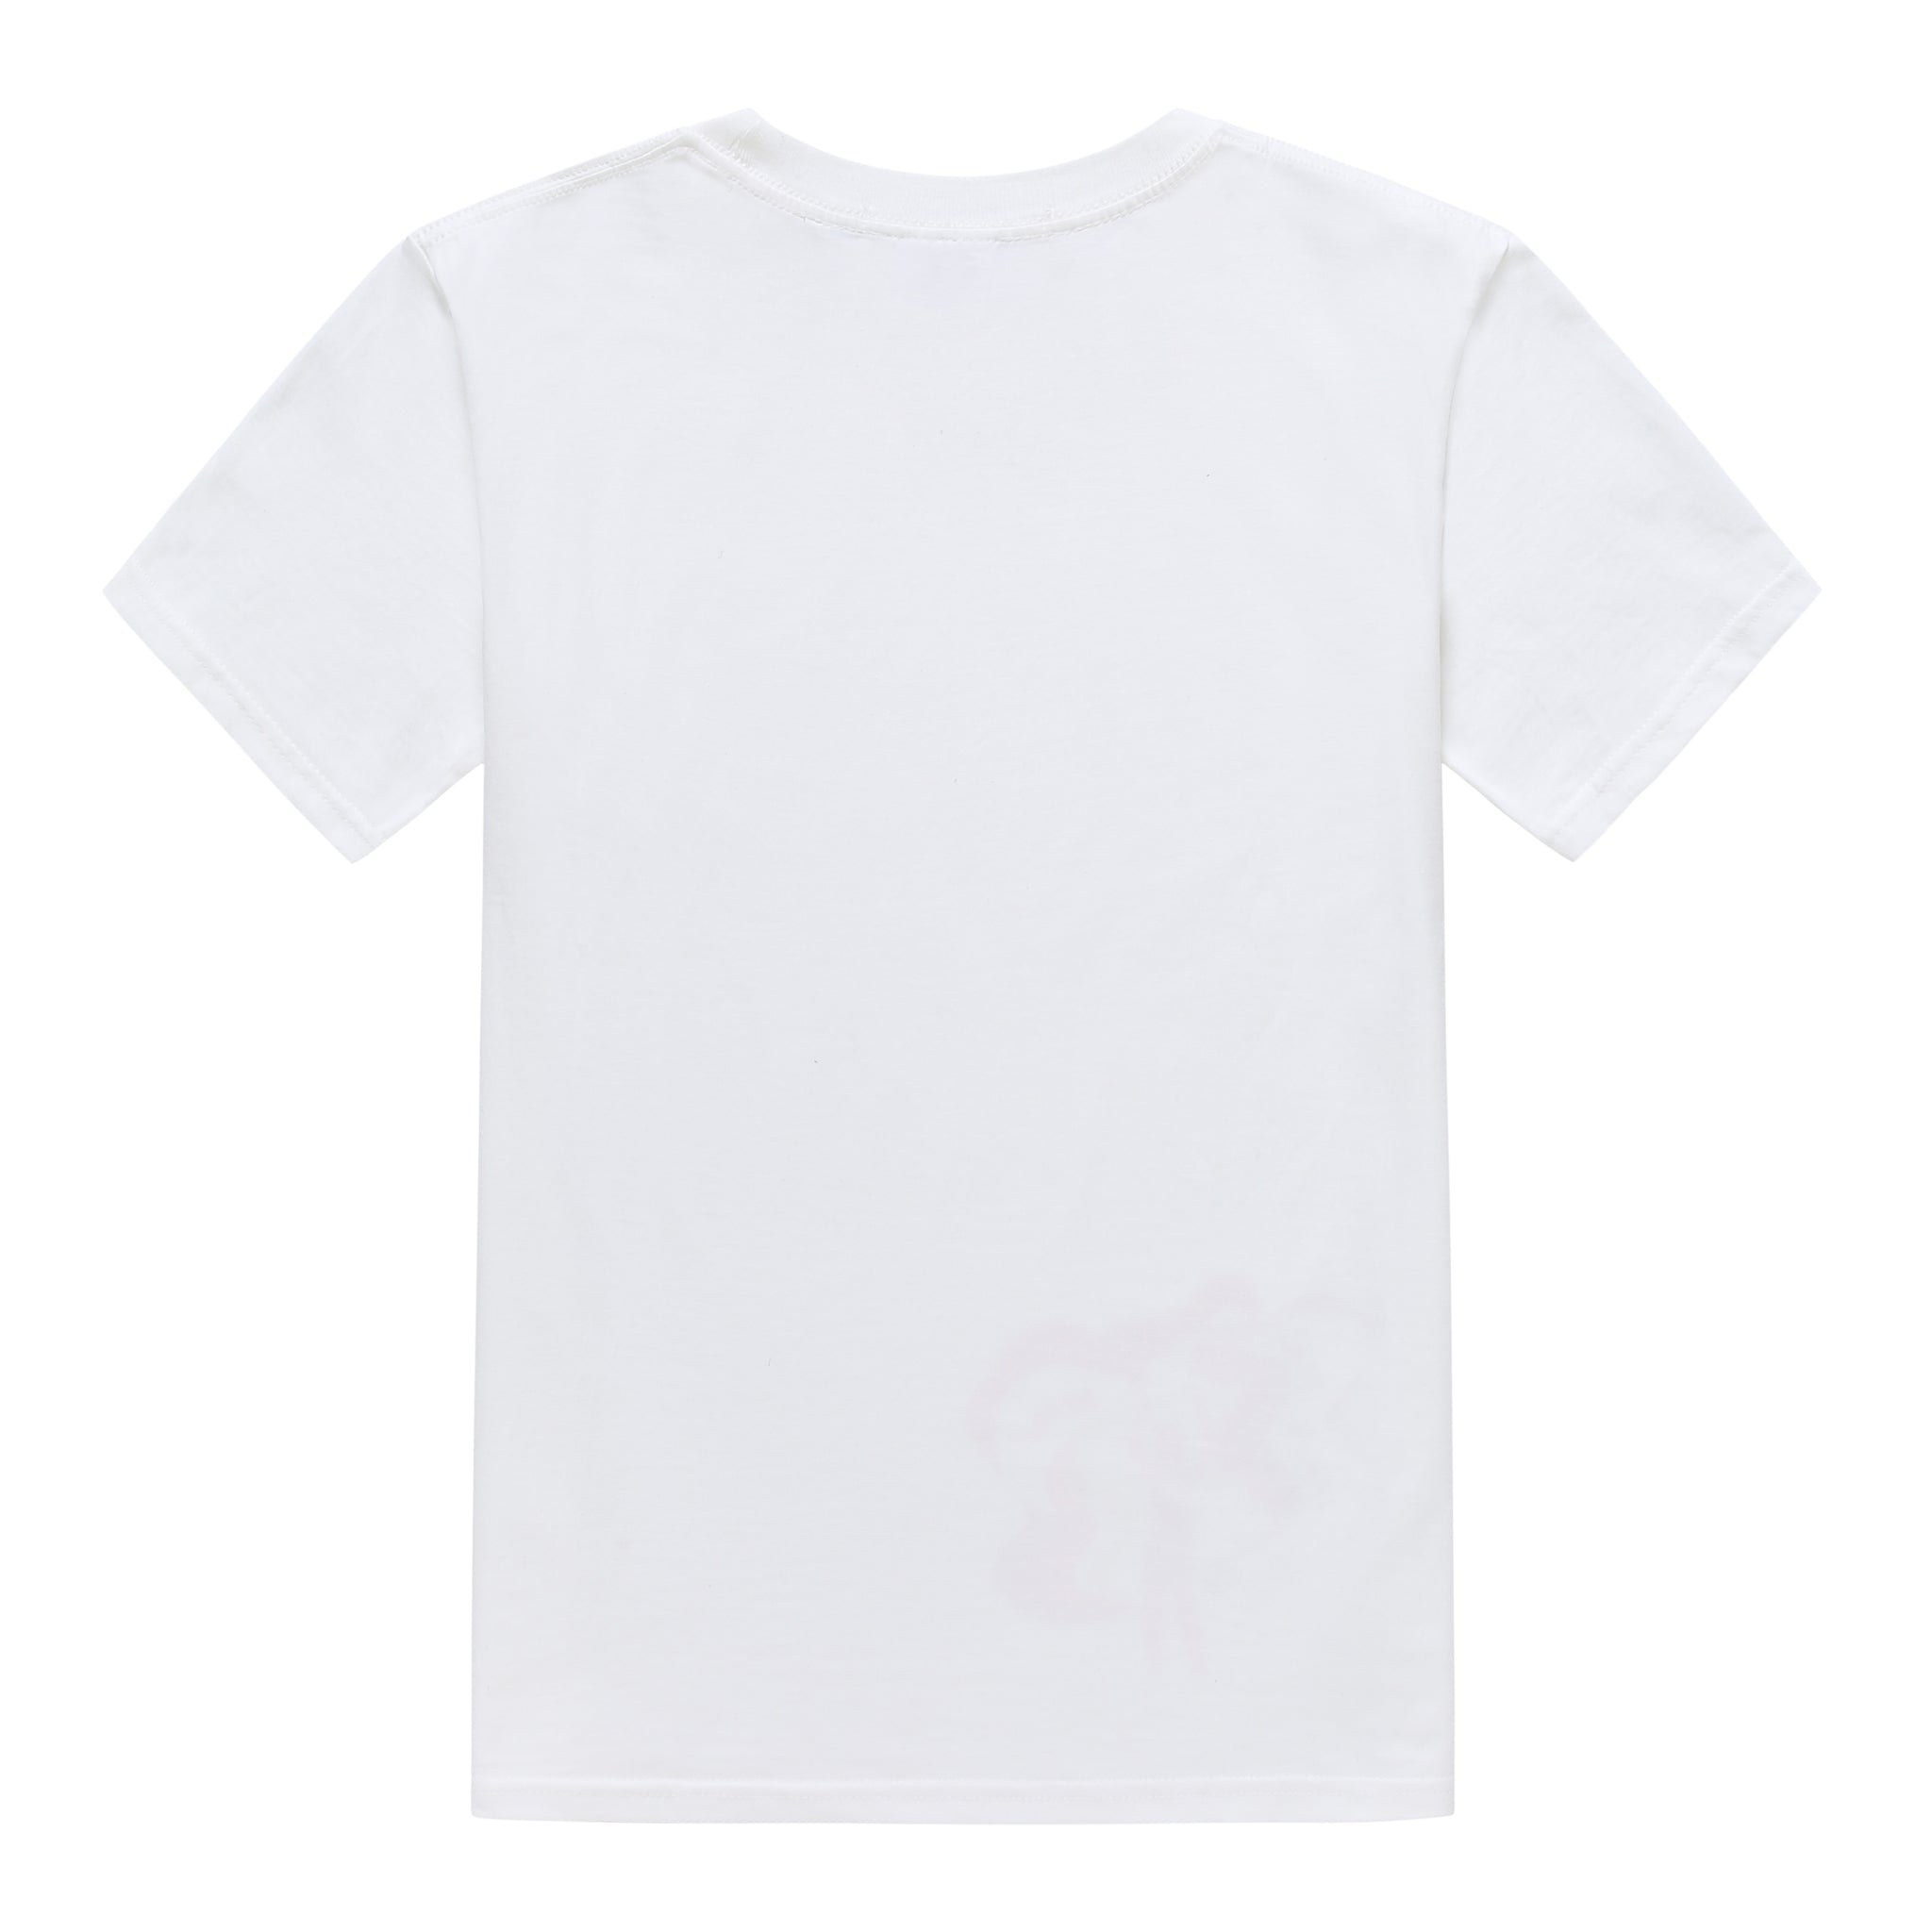 Original Speak Your Mind Graphic T-shirt In White